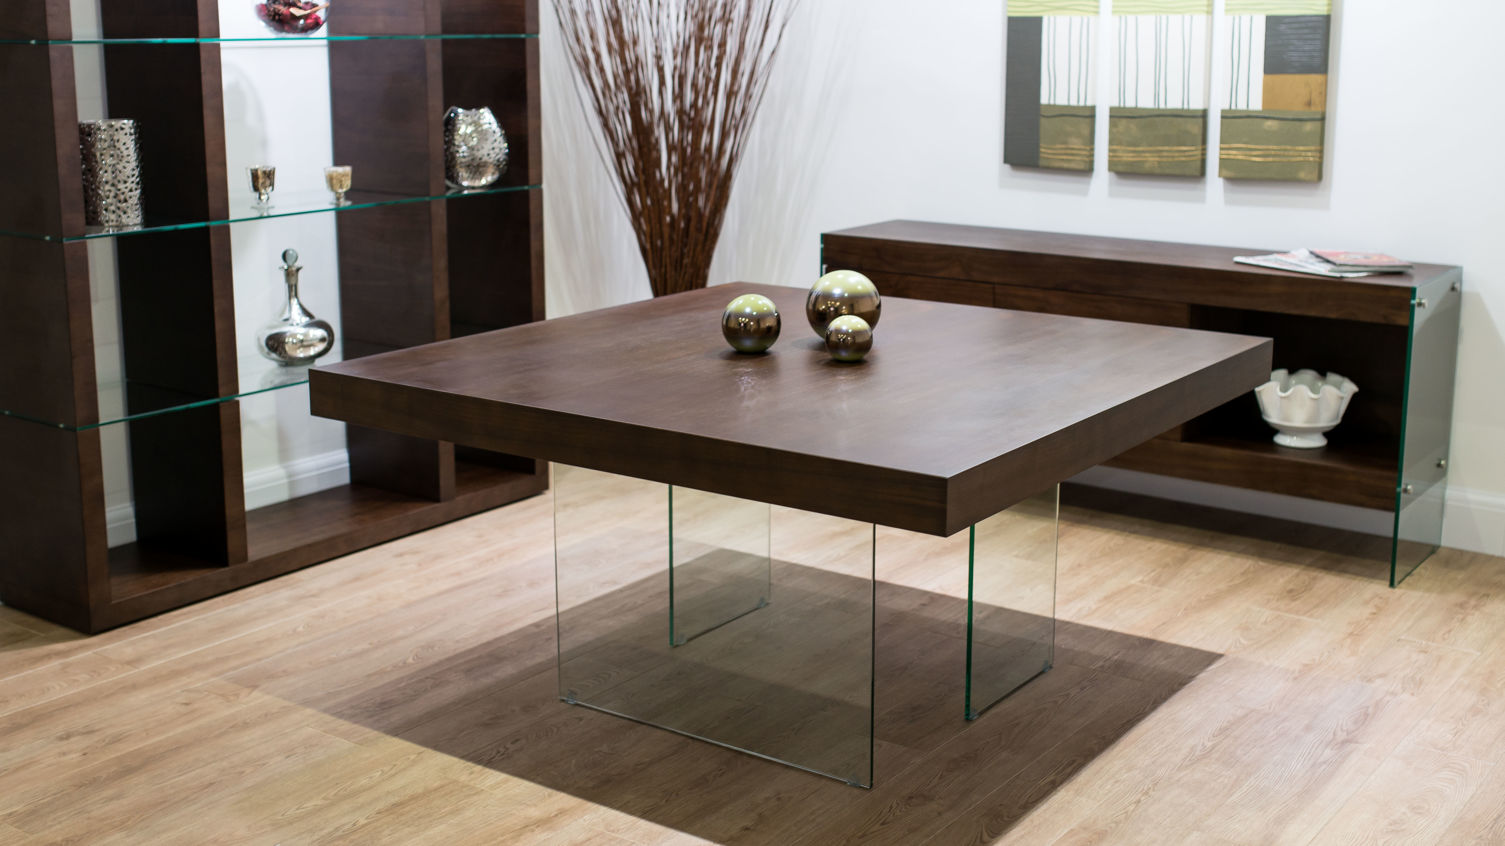 square kitchen table seats 8 square kitchen table Square kitchen table seats 8 Dining Table Dimensions Dining Room Table Dimensions Round Dining